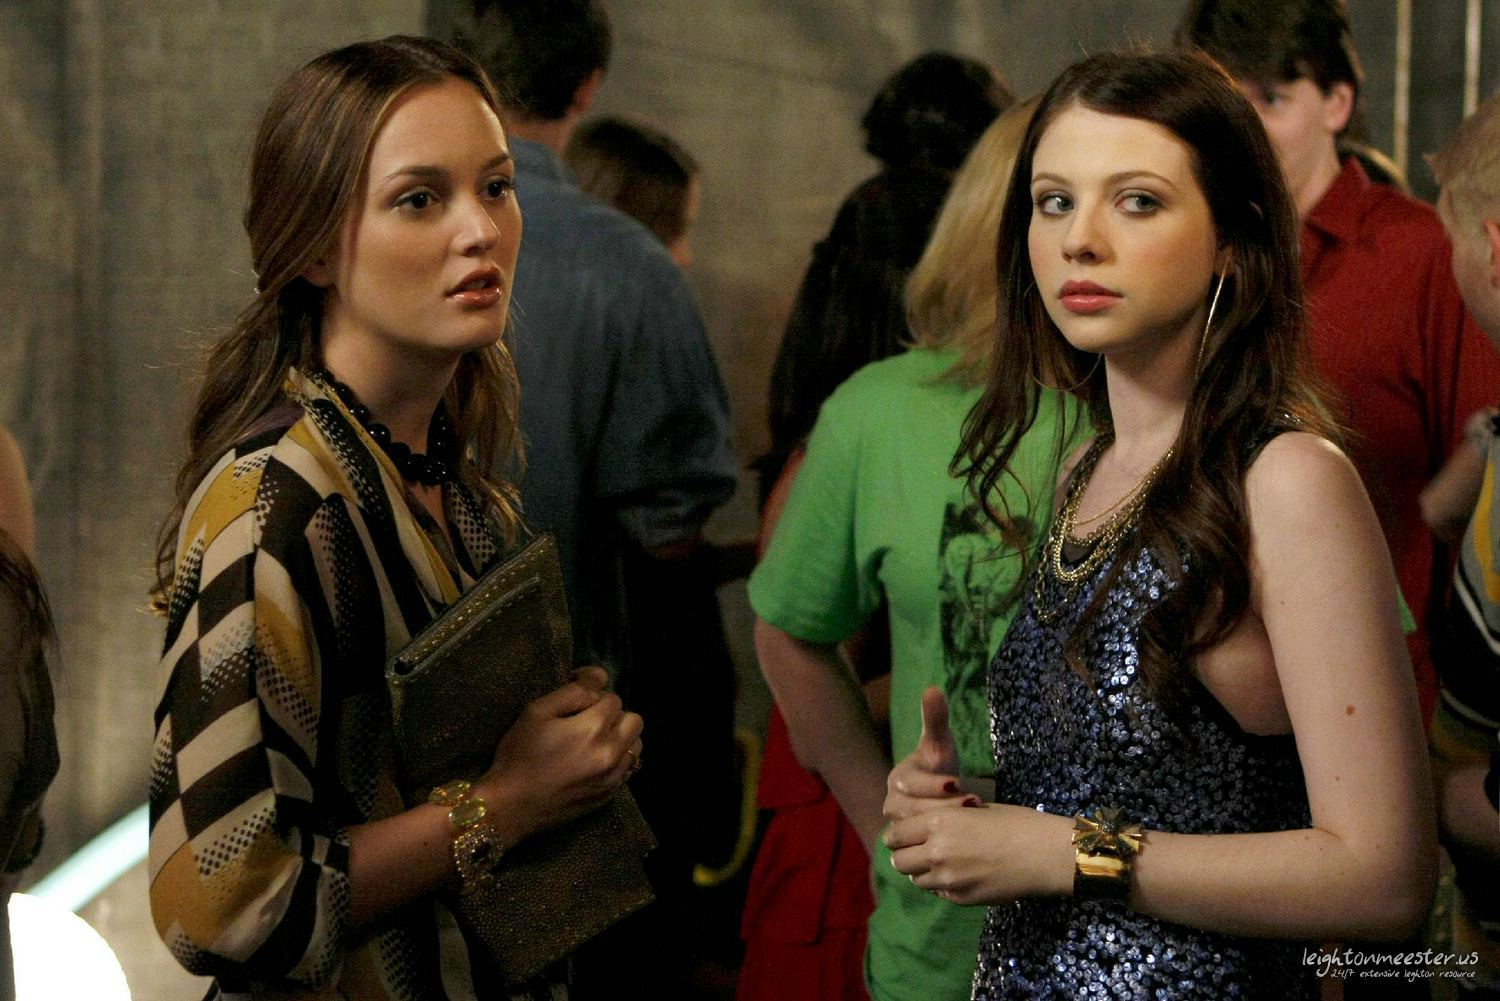 Outfits terza stagione New-Blair-stills-3-02-The-Freshman-blair-waldorf-8274363-1500-1001